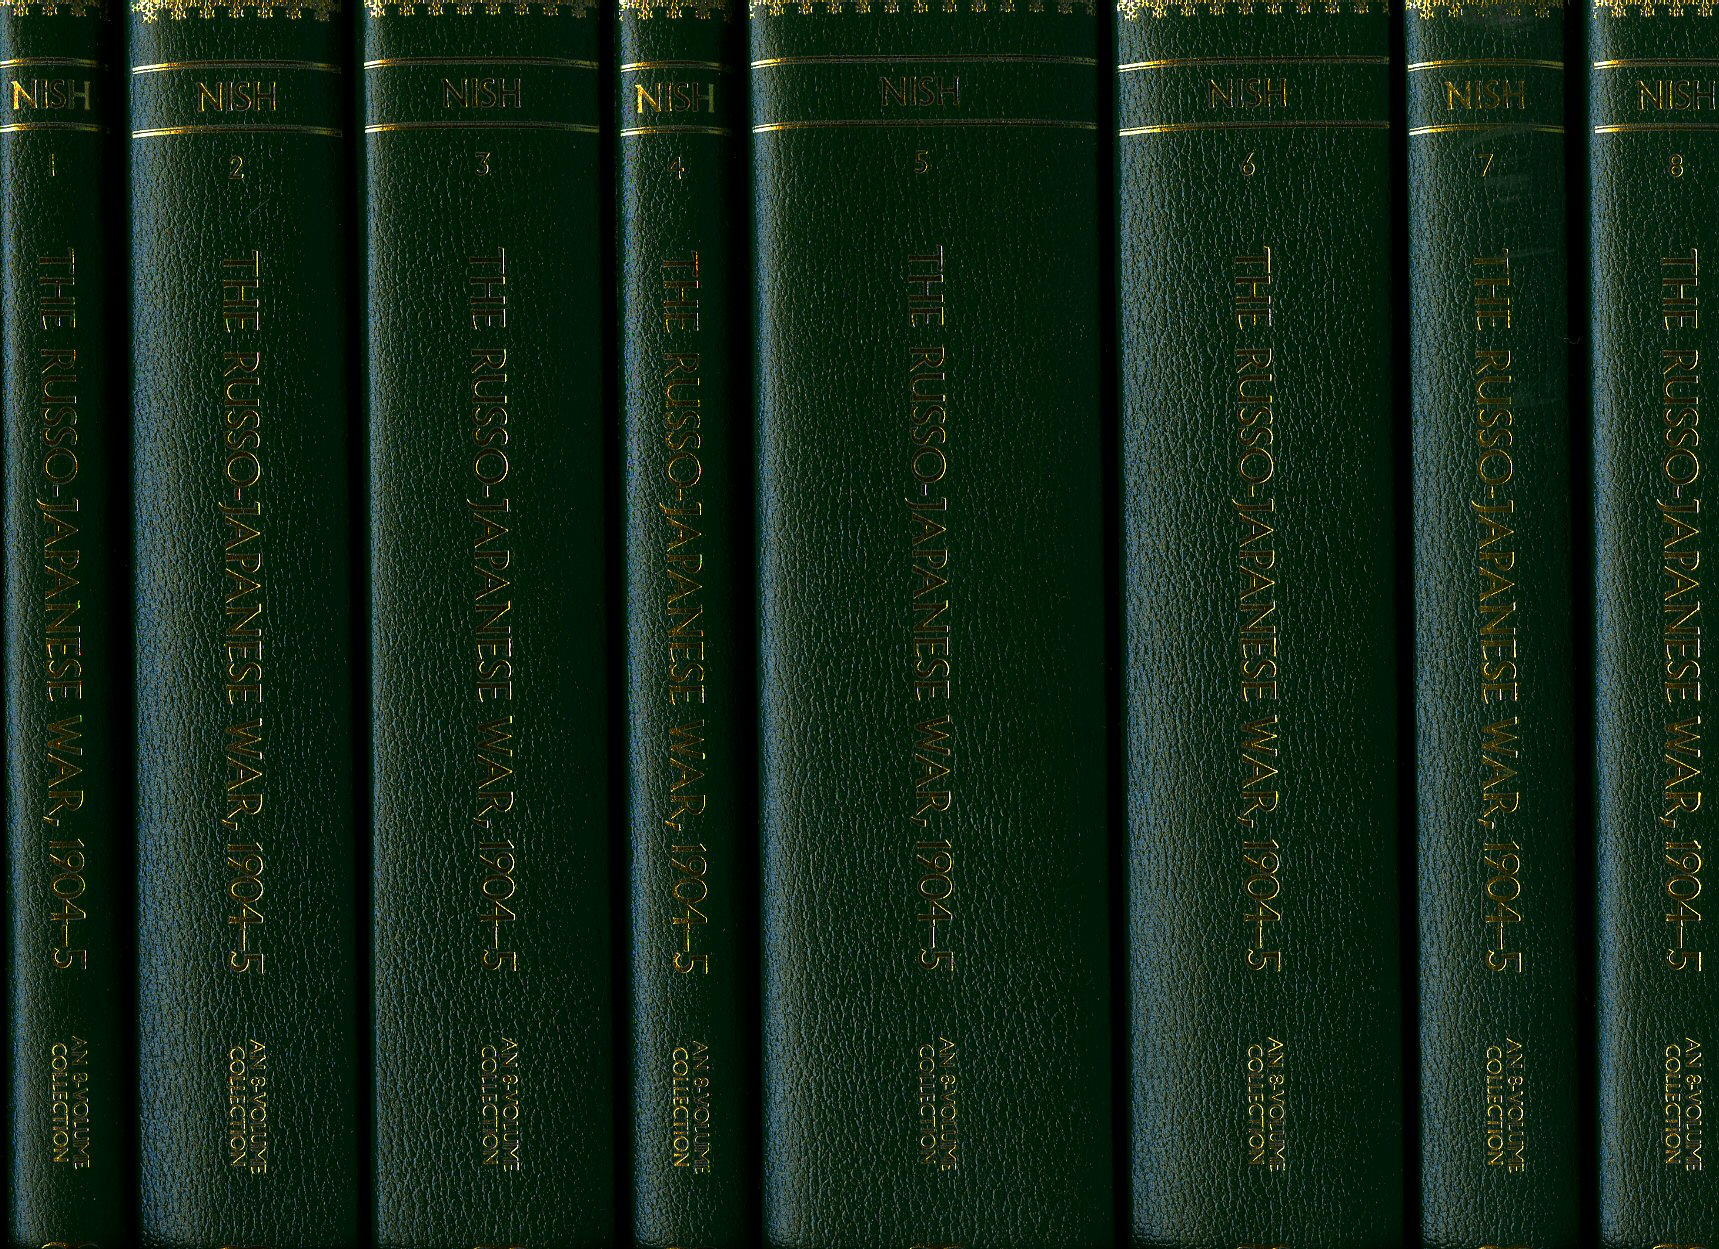 NISH, IAN [COMPILED AND INTRODUCED BY] - The Russo-Japanese War, 1904-5 (1904 to 1905); Volumes 1-8 complete [8 Volume Set]